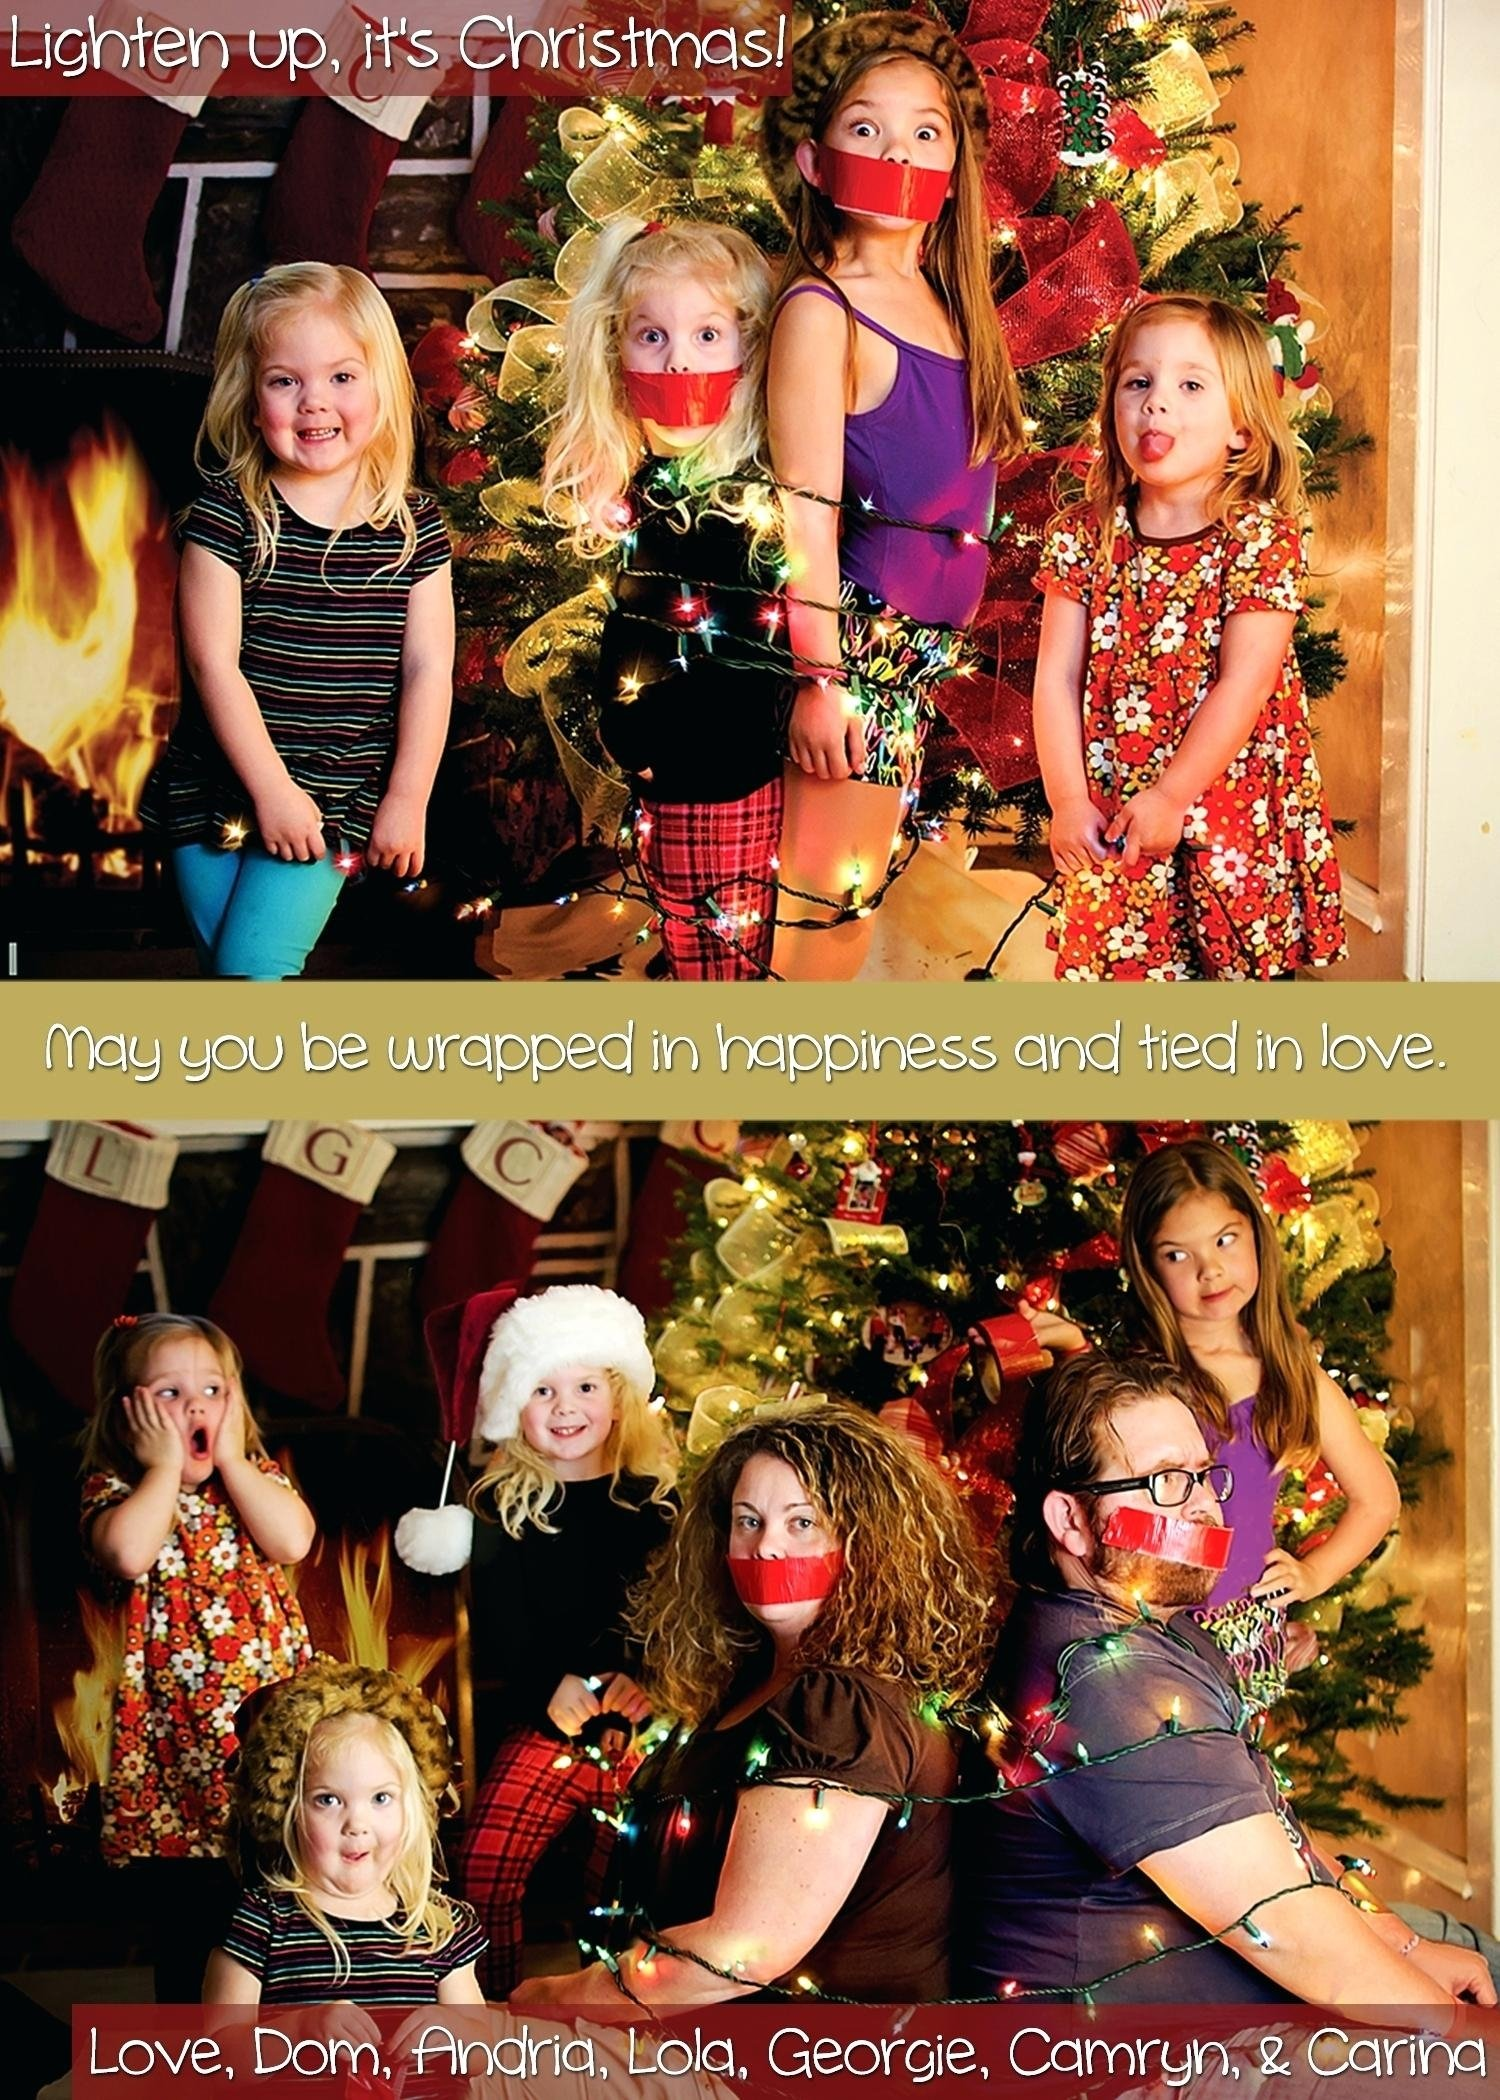 10 Gorgeous Funny Christmas Card Ideas Kids funny photo christmas cards funniest card ideas picture holiday 2